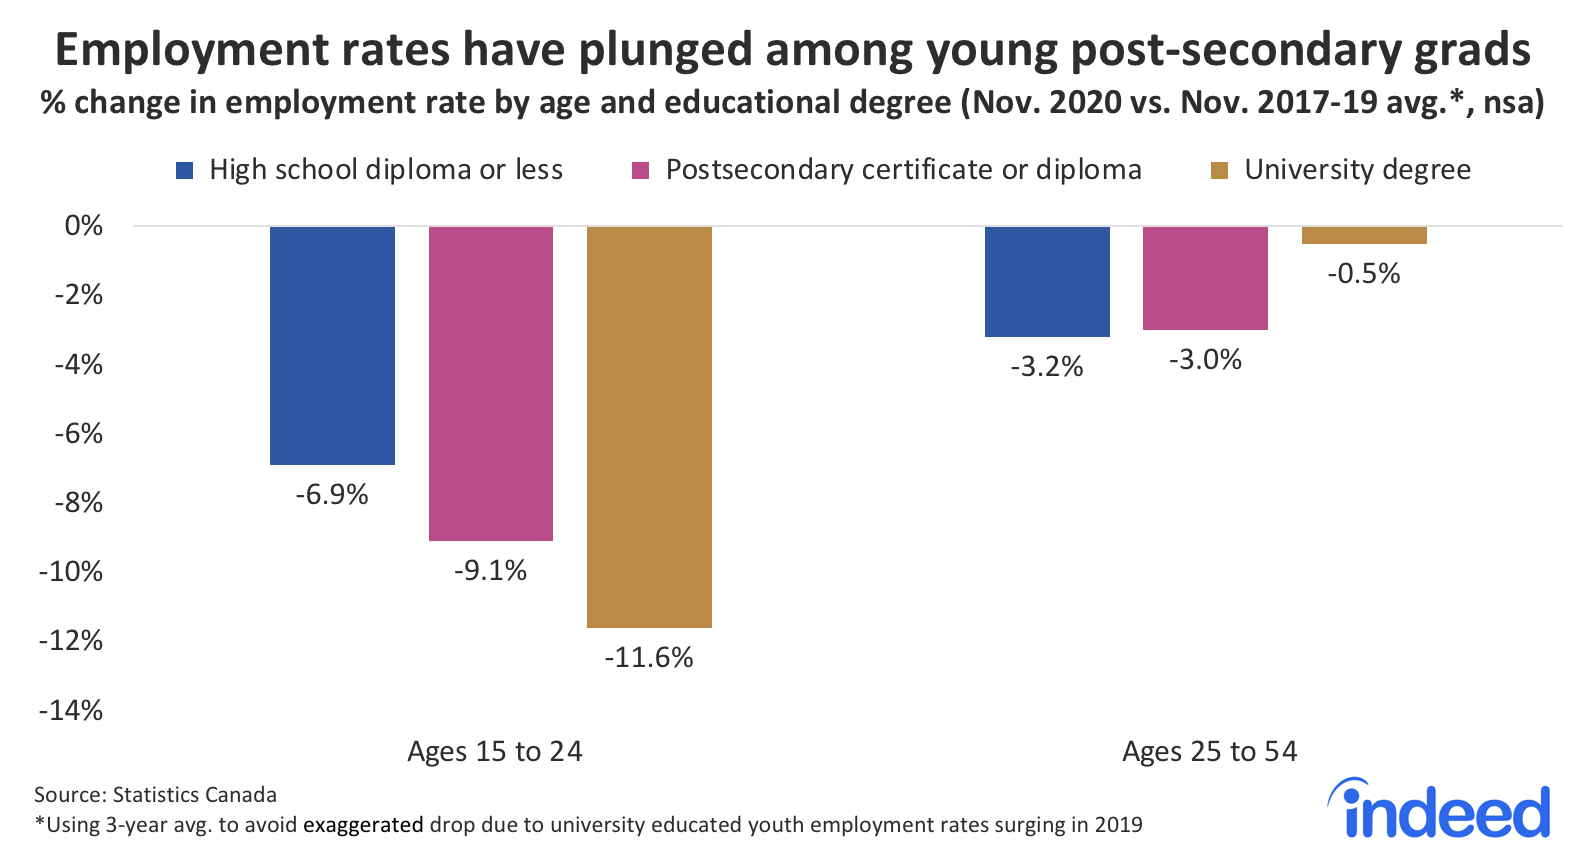 Bar chart showing employment rates have plunged among young post-secondary grads